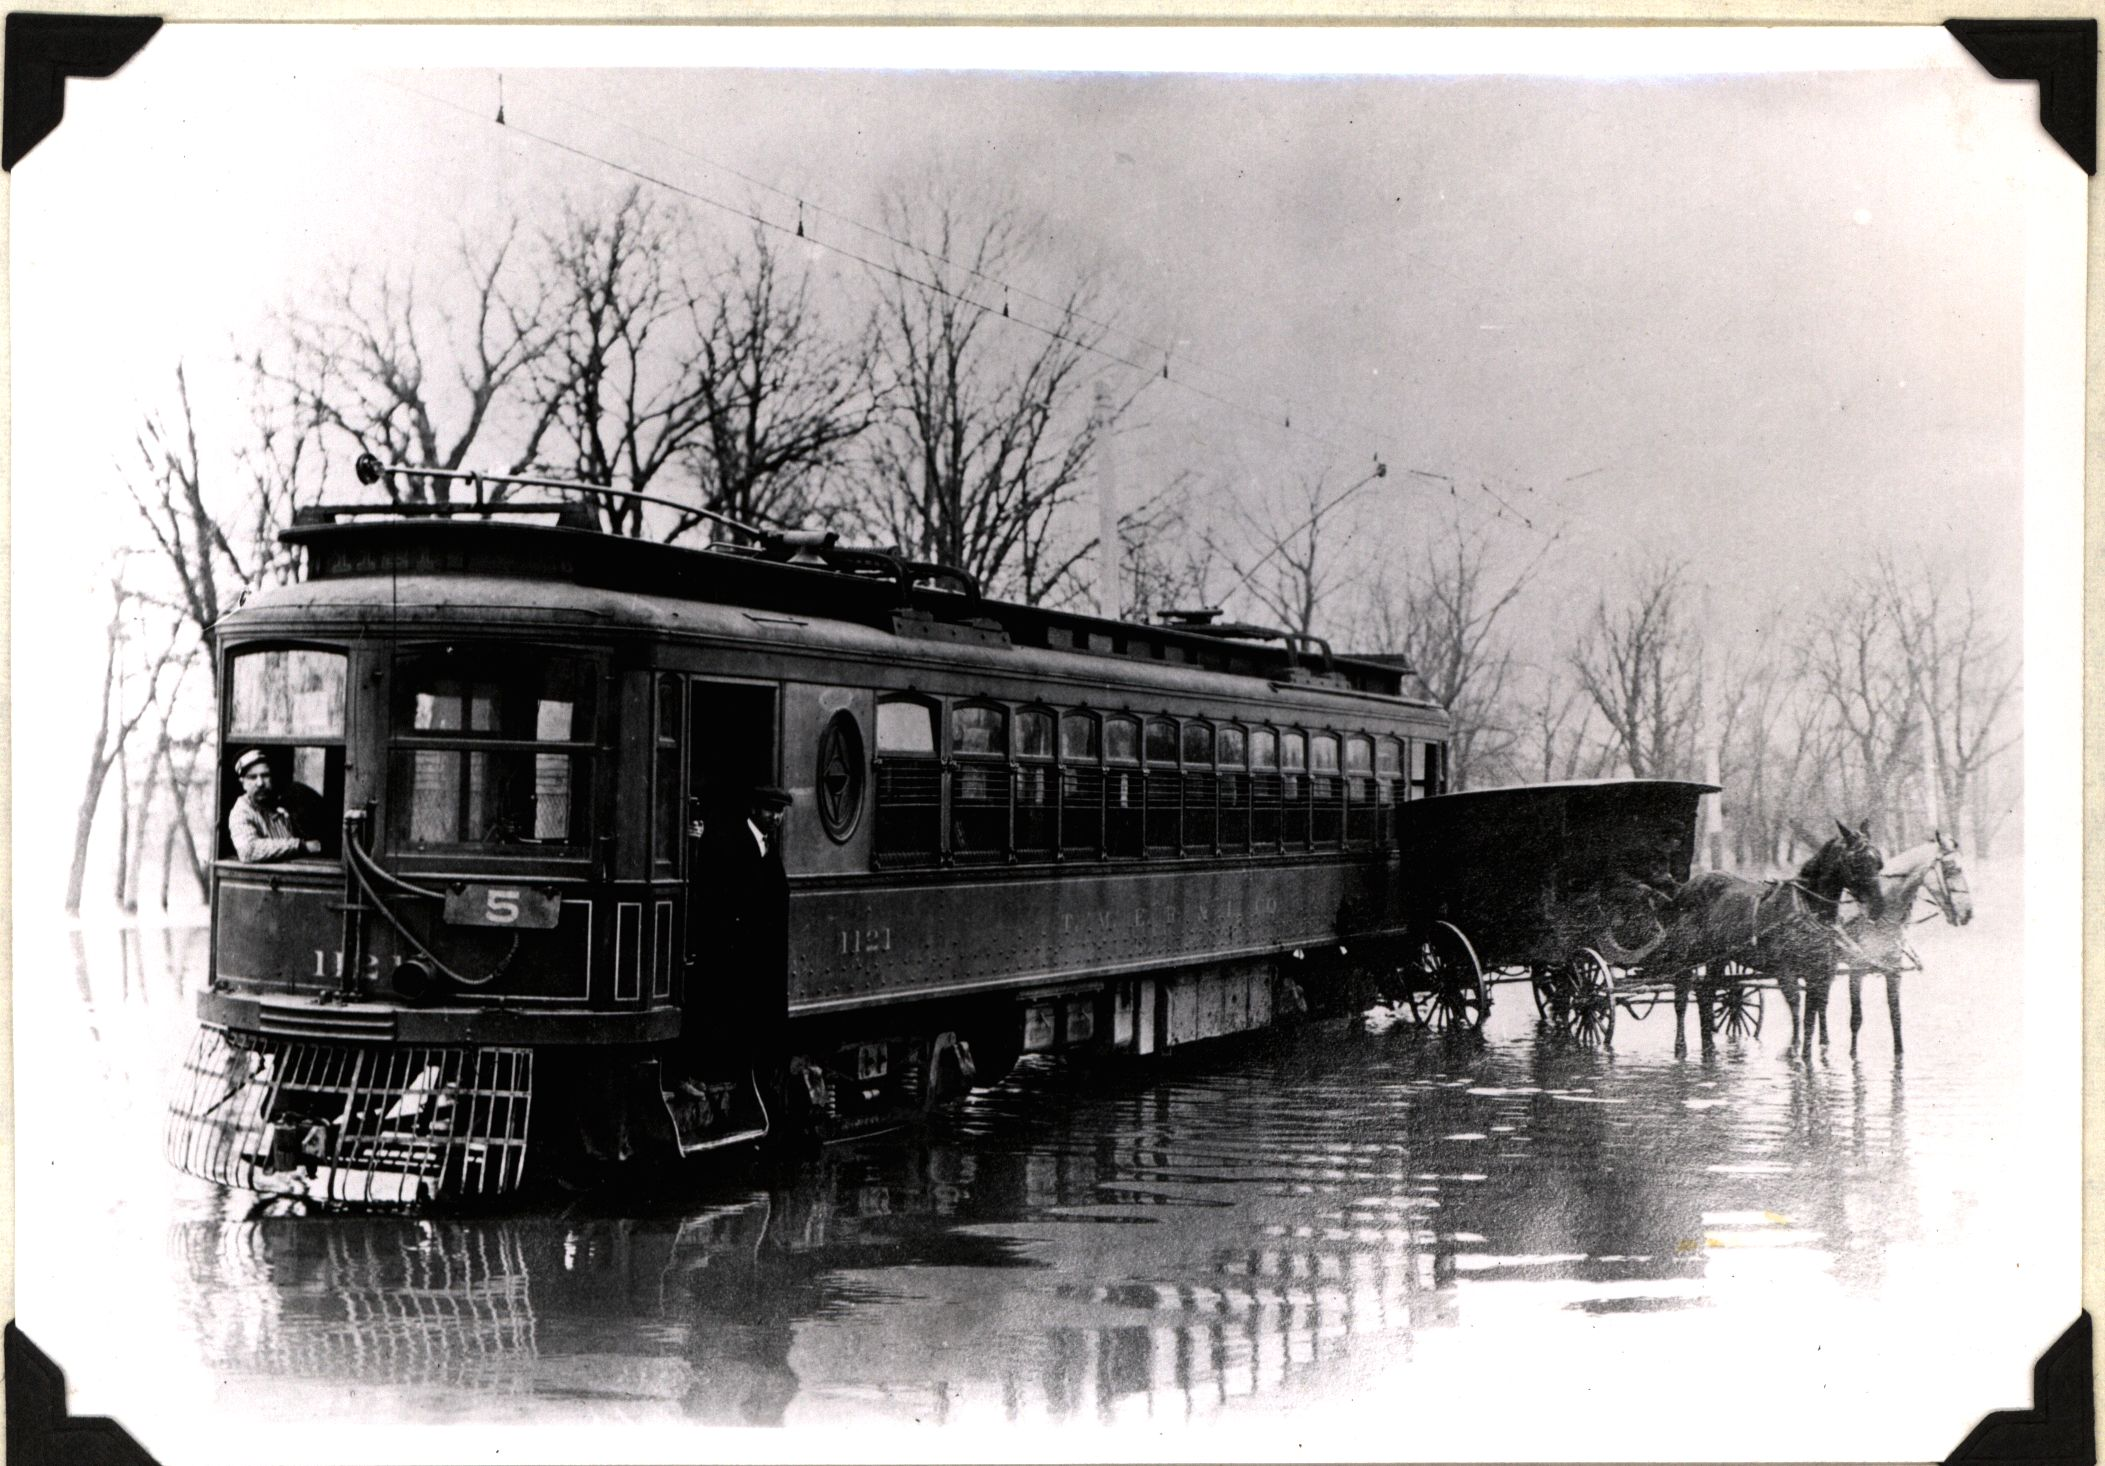 <table class=&quot;lightbox&quot;><tr><td colspan=2 class=&quot;lightbox-title&quot;>TMER&amp;L Car and Horse-Drawn Buggy</td></tr><tr><td colspan=2 class=&quot;lightbox-caption&quot;>A conductor leans from the window of this interurban car as it sits on a flooded Milwaukee street in this 1906 photograph.</td></tr><tr><td colspan=2 class=&quot;lightbox-spacer&quot;></td></tr><tr class=&quot;lightbox-detail&quot;><td class=&quot;cell-title&quot;>Source: </td><td class=&quot;cell-value&quot;>From the Robert W. Eichelberg Papers. Archives, University of Wisconsin-Milwaukee Libraries.<br /><a href=&quot;http://digicoll.library.wisc.edu/cgi/f/findaid/findaid-idx?c=wiarchives;view=reslist;subview=standard;didno=uw-mil-uwmmss0228;focusrgn=contentslist;cc=wiarchives;byte=47554507&quot; target=&quot;_blank&quot;>University of Wisconsin-Milwaukee Libraries</a></td></tr><tr class=&quot;filler-row&quot;><td colspan=2>&nbsp;</td></tr></table>